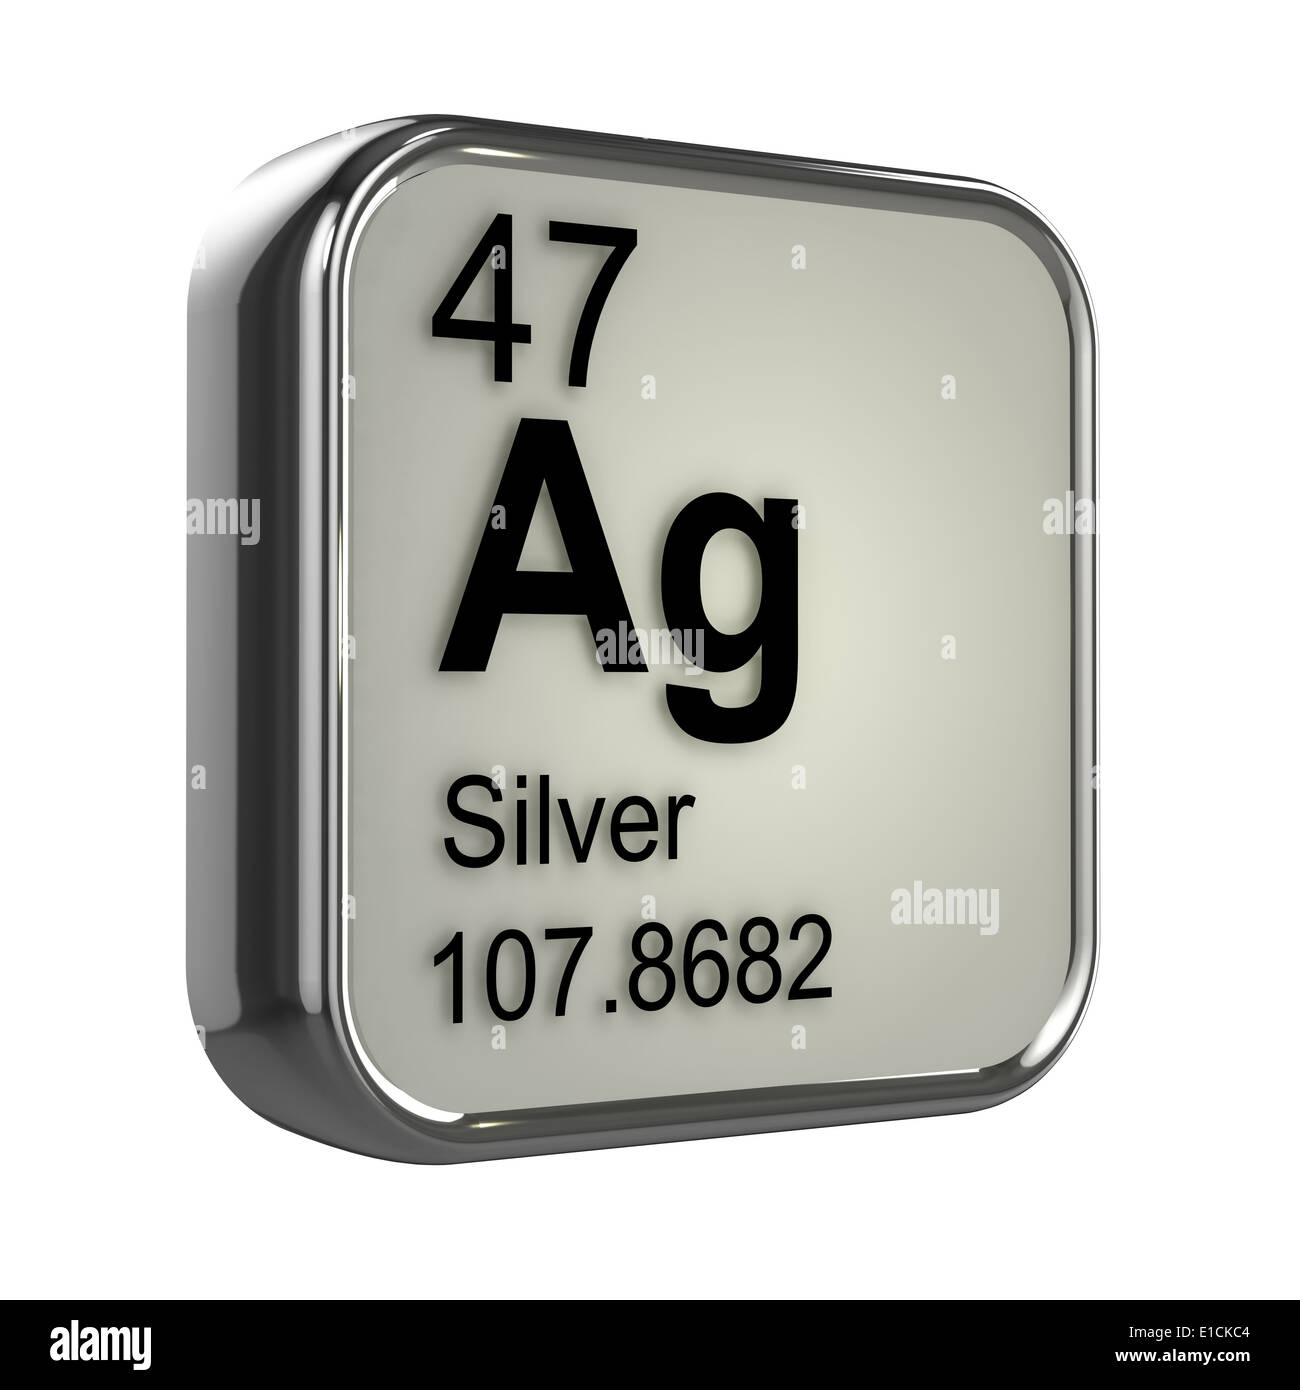 3d Periodic Table Design For Silver Stock Photo 69734788 Alamy